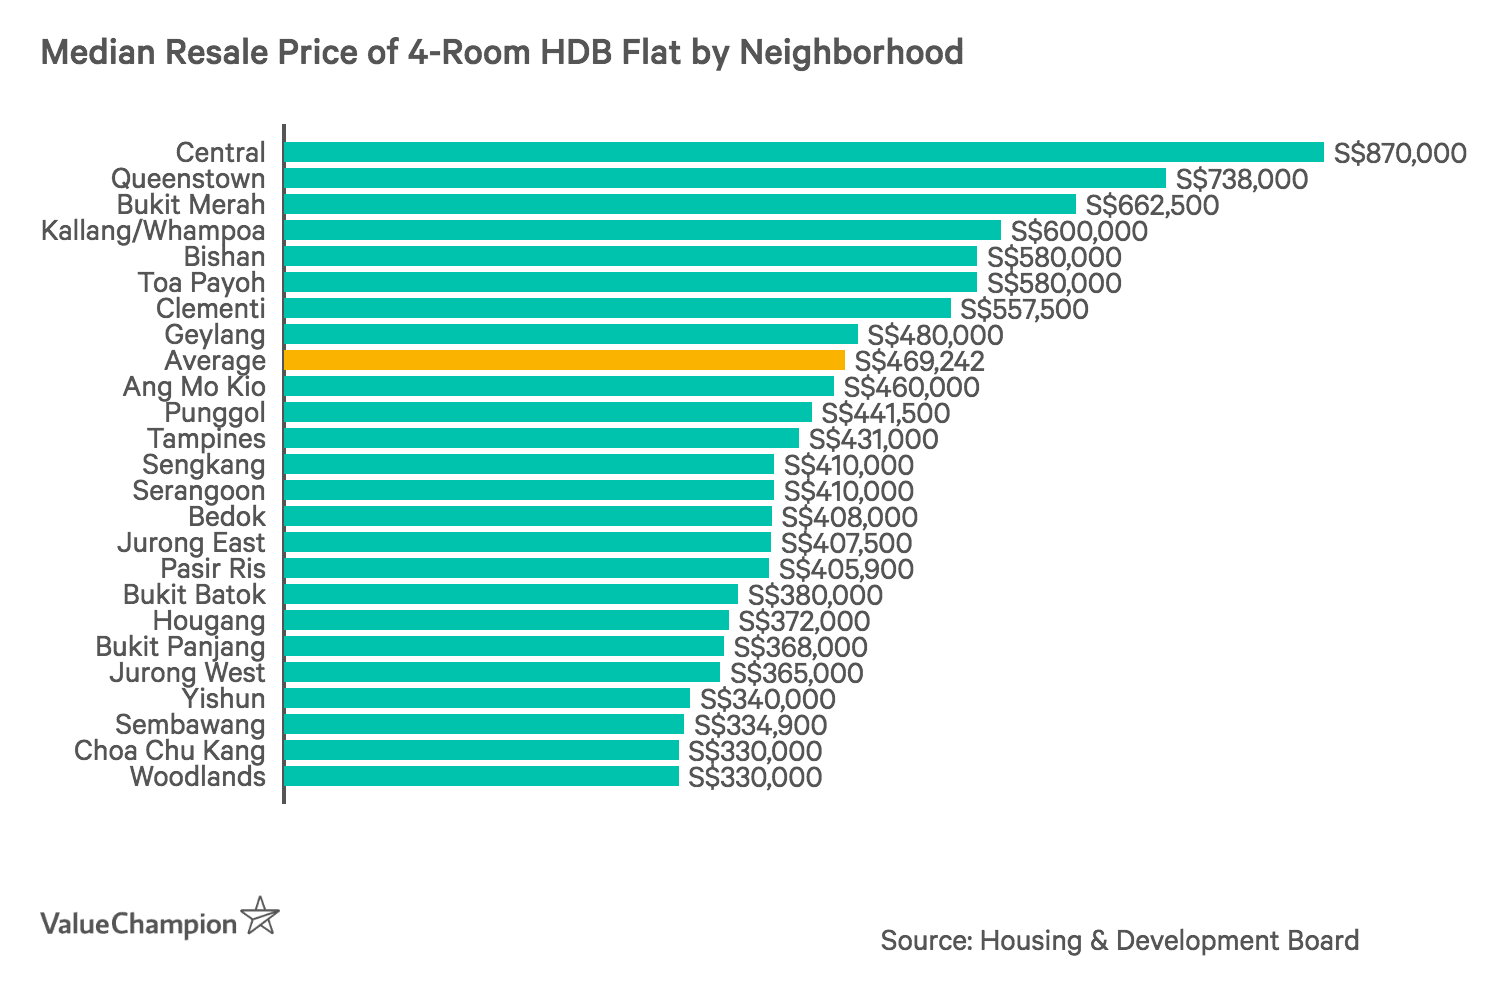 Median Resale Price of a 4-Room HDB Flat by Neighbourhood